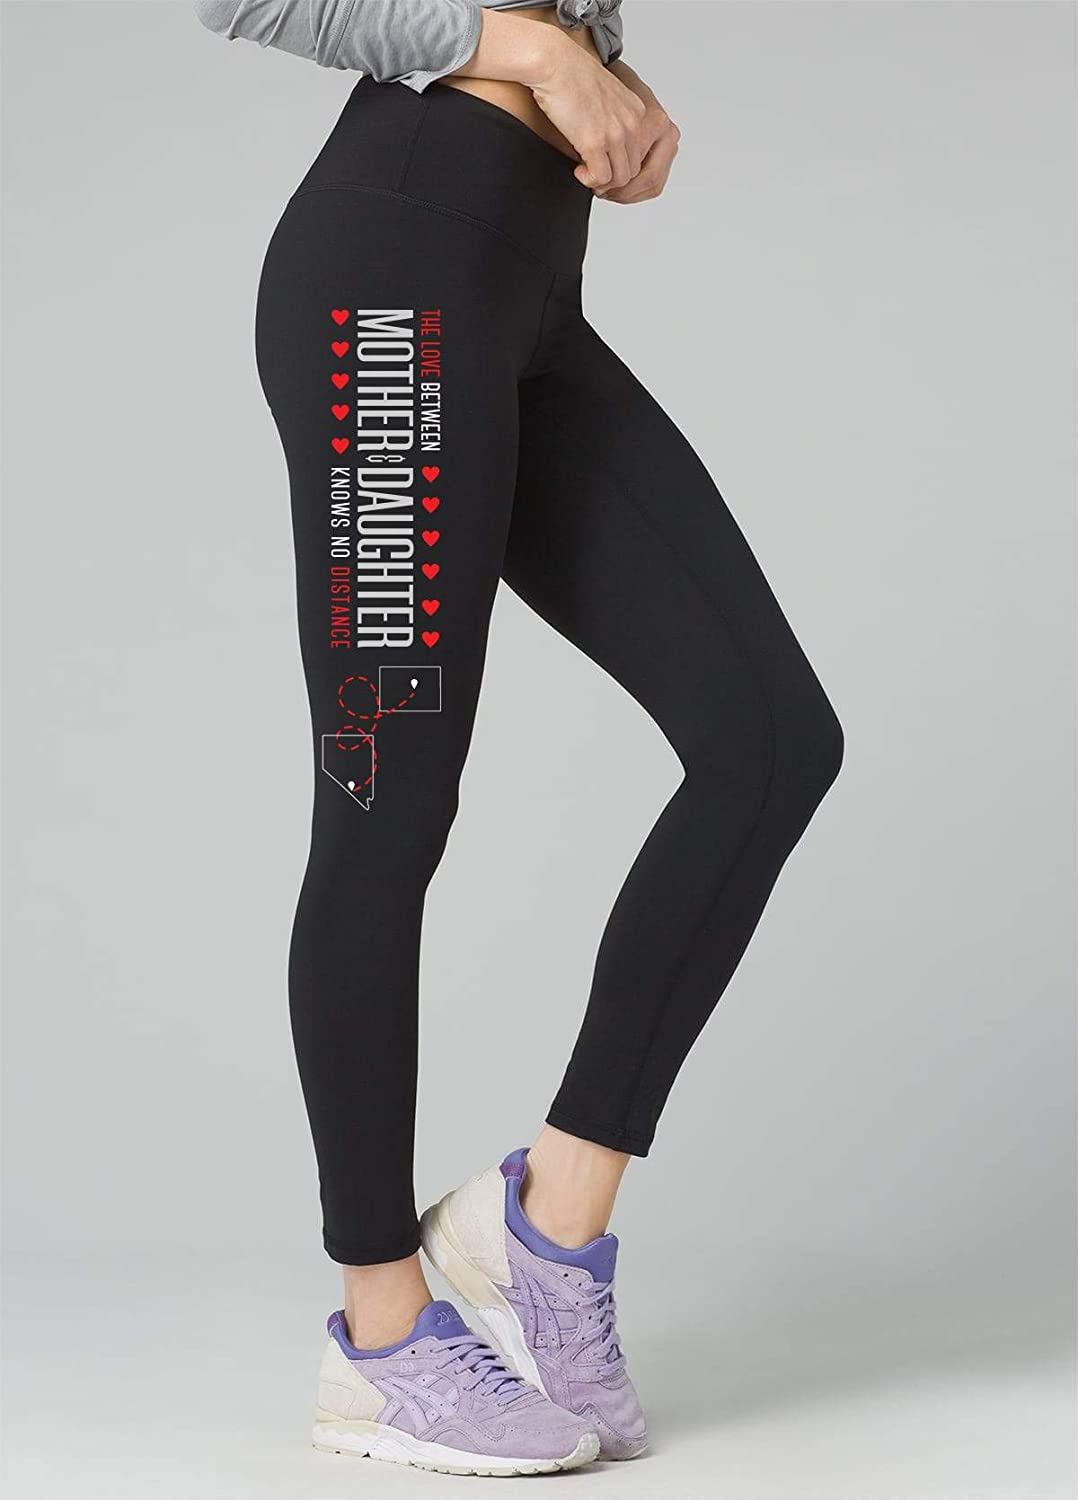 Leggings Colorado CO Nevada NV The Love Between Mother /& Daughter Knows no Distance